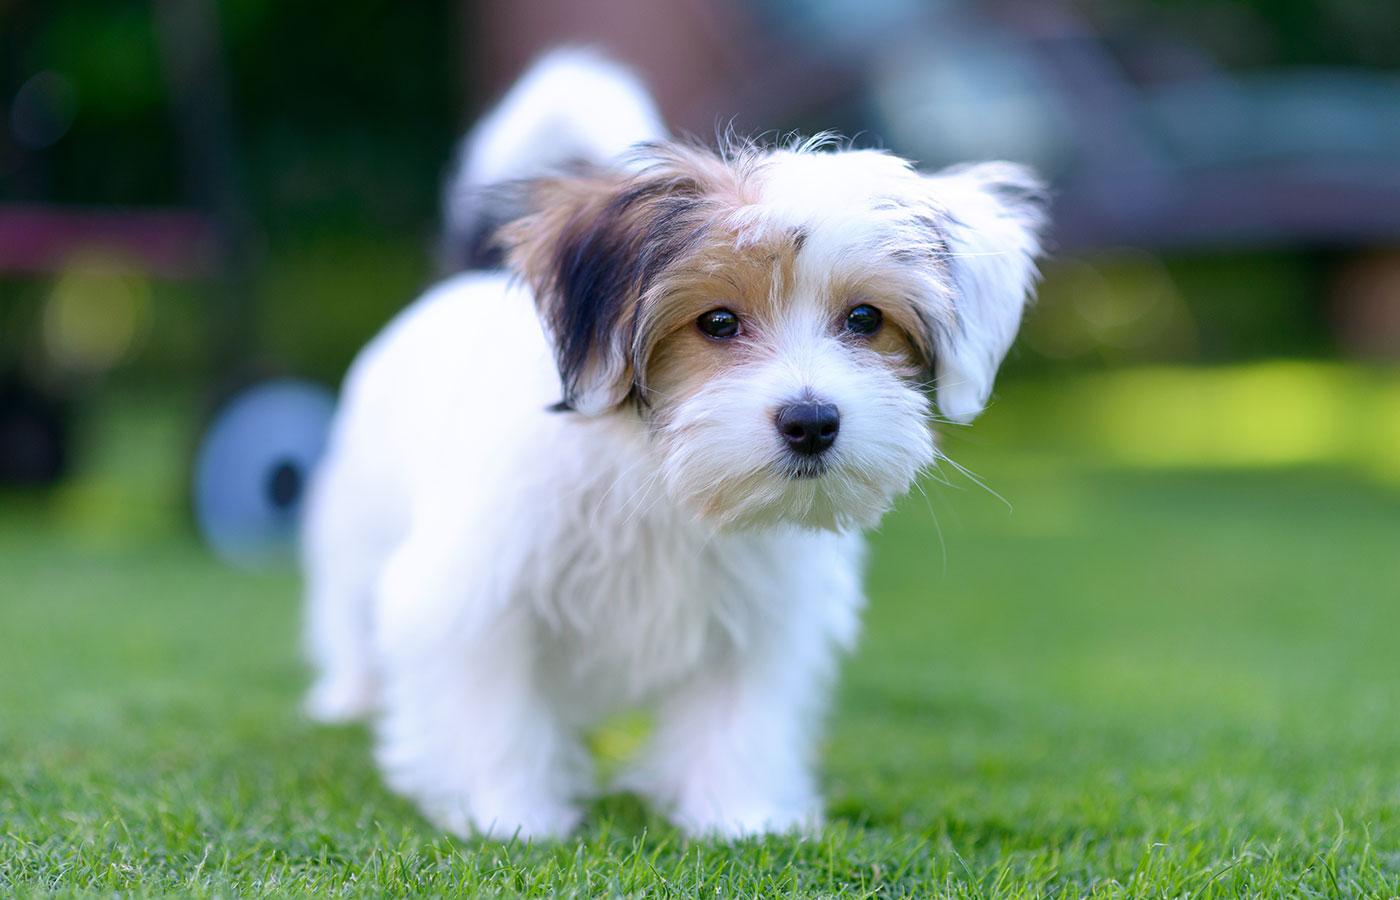 An adorable, curious puppy seems curious and inquisitive while playing on green grass in a vibrant, summer backyard setting